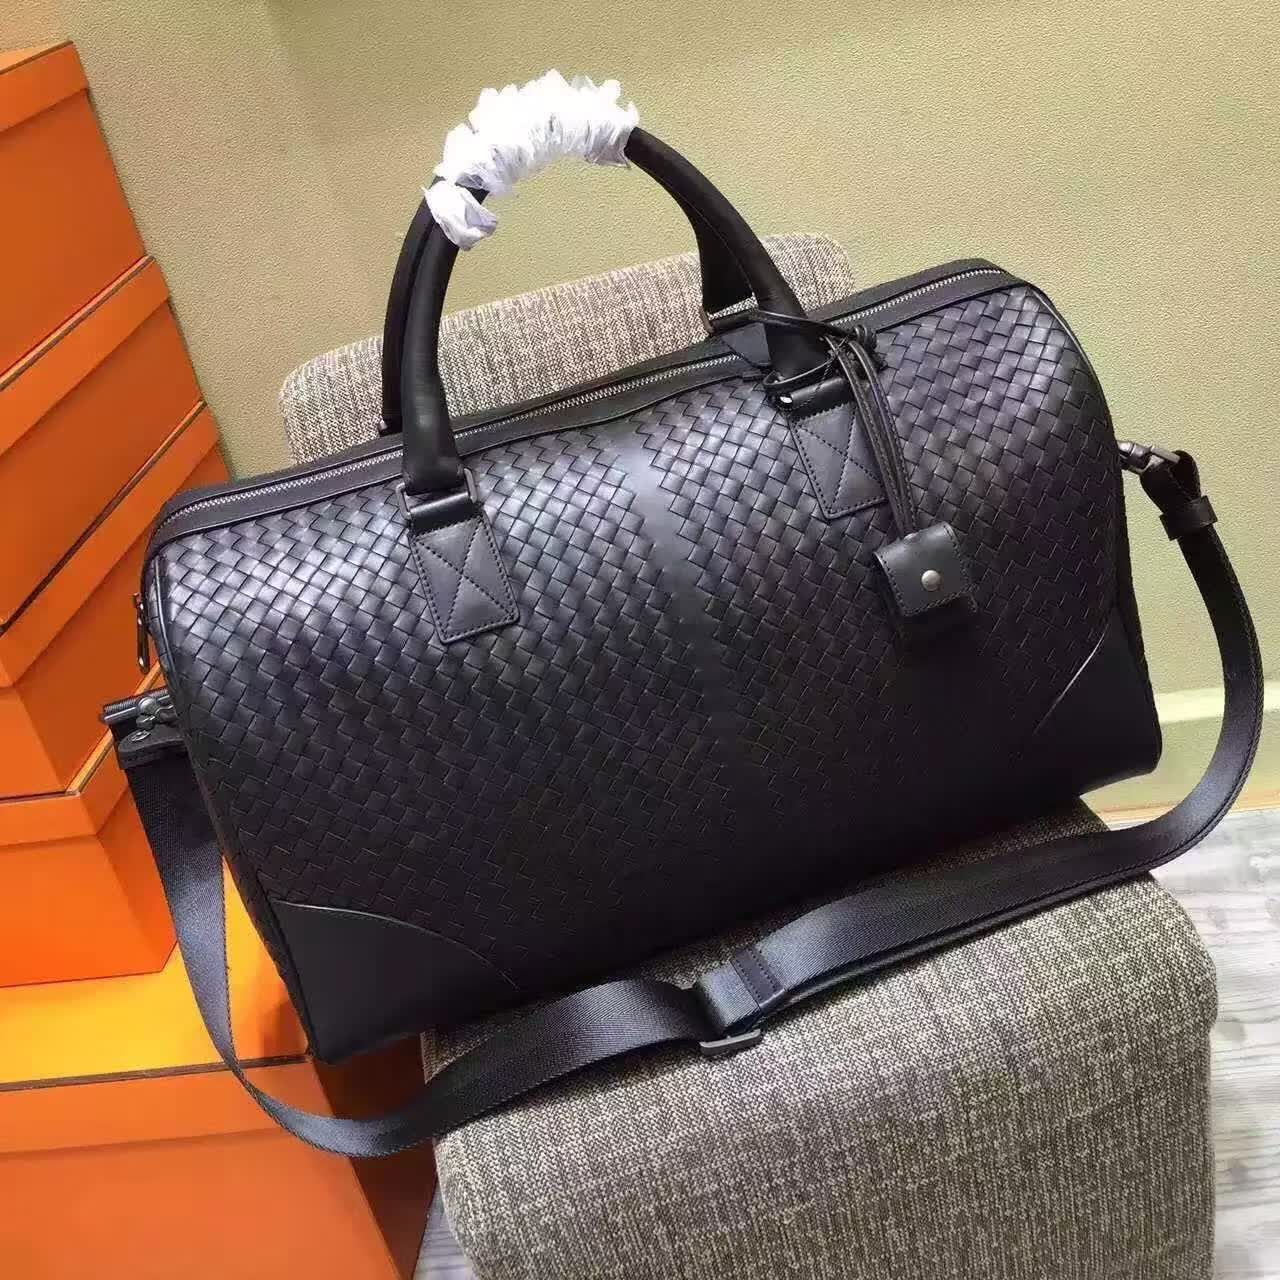 bottega veneta Bag, ID : 55993(FORSALE:a@yybags.com), bottega veneta lamp, bottega price, bottega veneta black tote, la bottega veneta, bottegga veneta, bottega veneta luxury wallets, tasche bottega veneta, bottega veneta hobo, bottega veneta leather wallets for women, bottega veneta attache briefcase, bottega veneta pink wallet #bottegavenetaBag #bottegaveneta #bottega #ventta